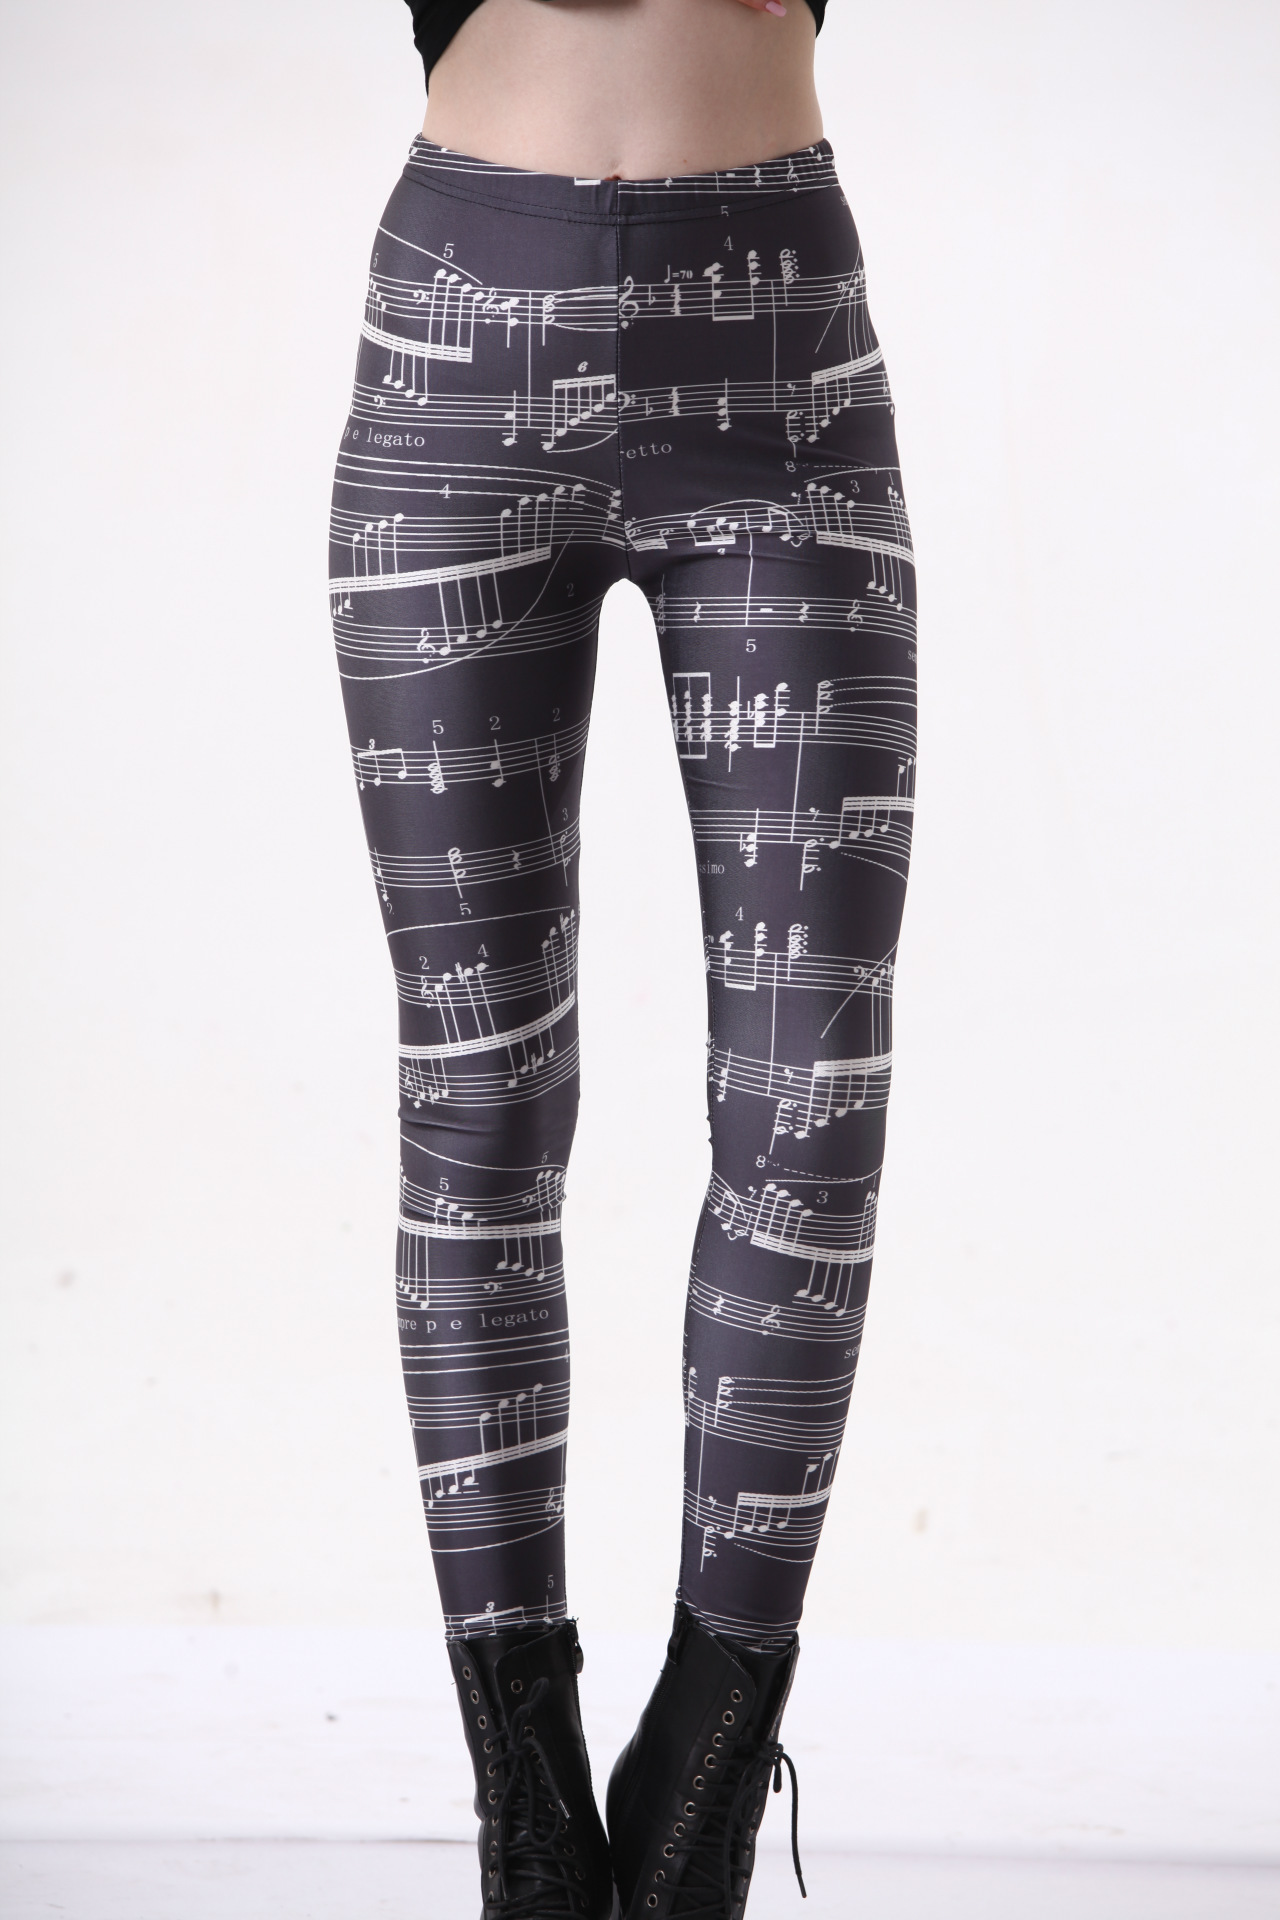 Foreign Trade In Europe And The United States Hot Star Digital Printing Wholesale And Retail Musical Notation Sexy Leggings